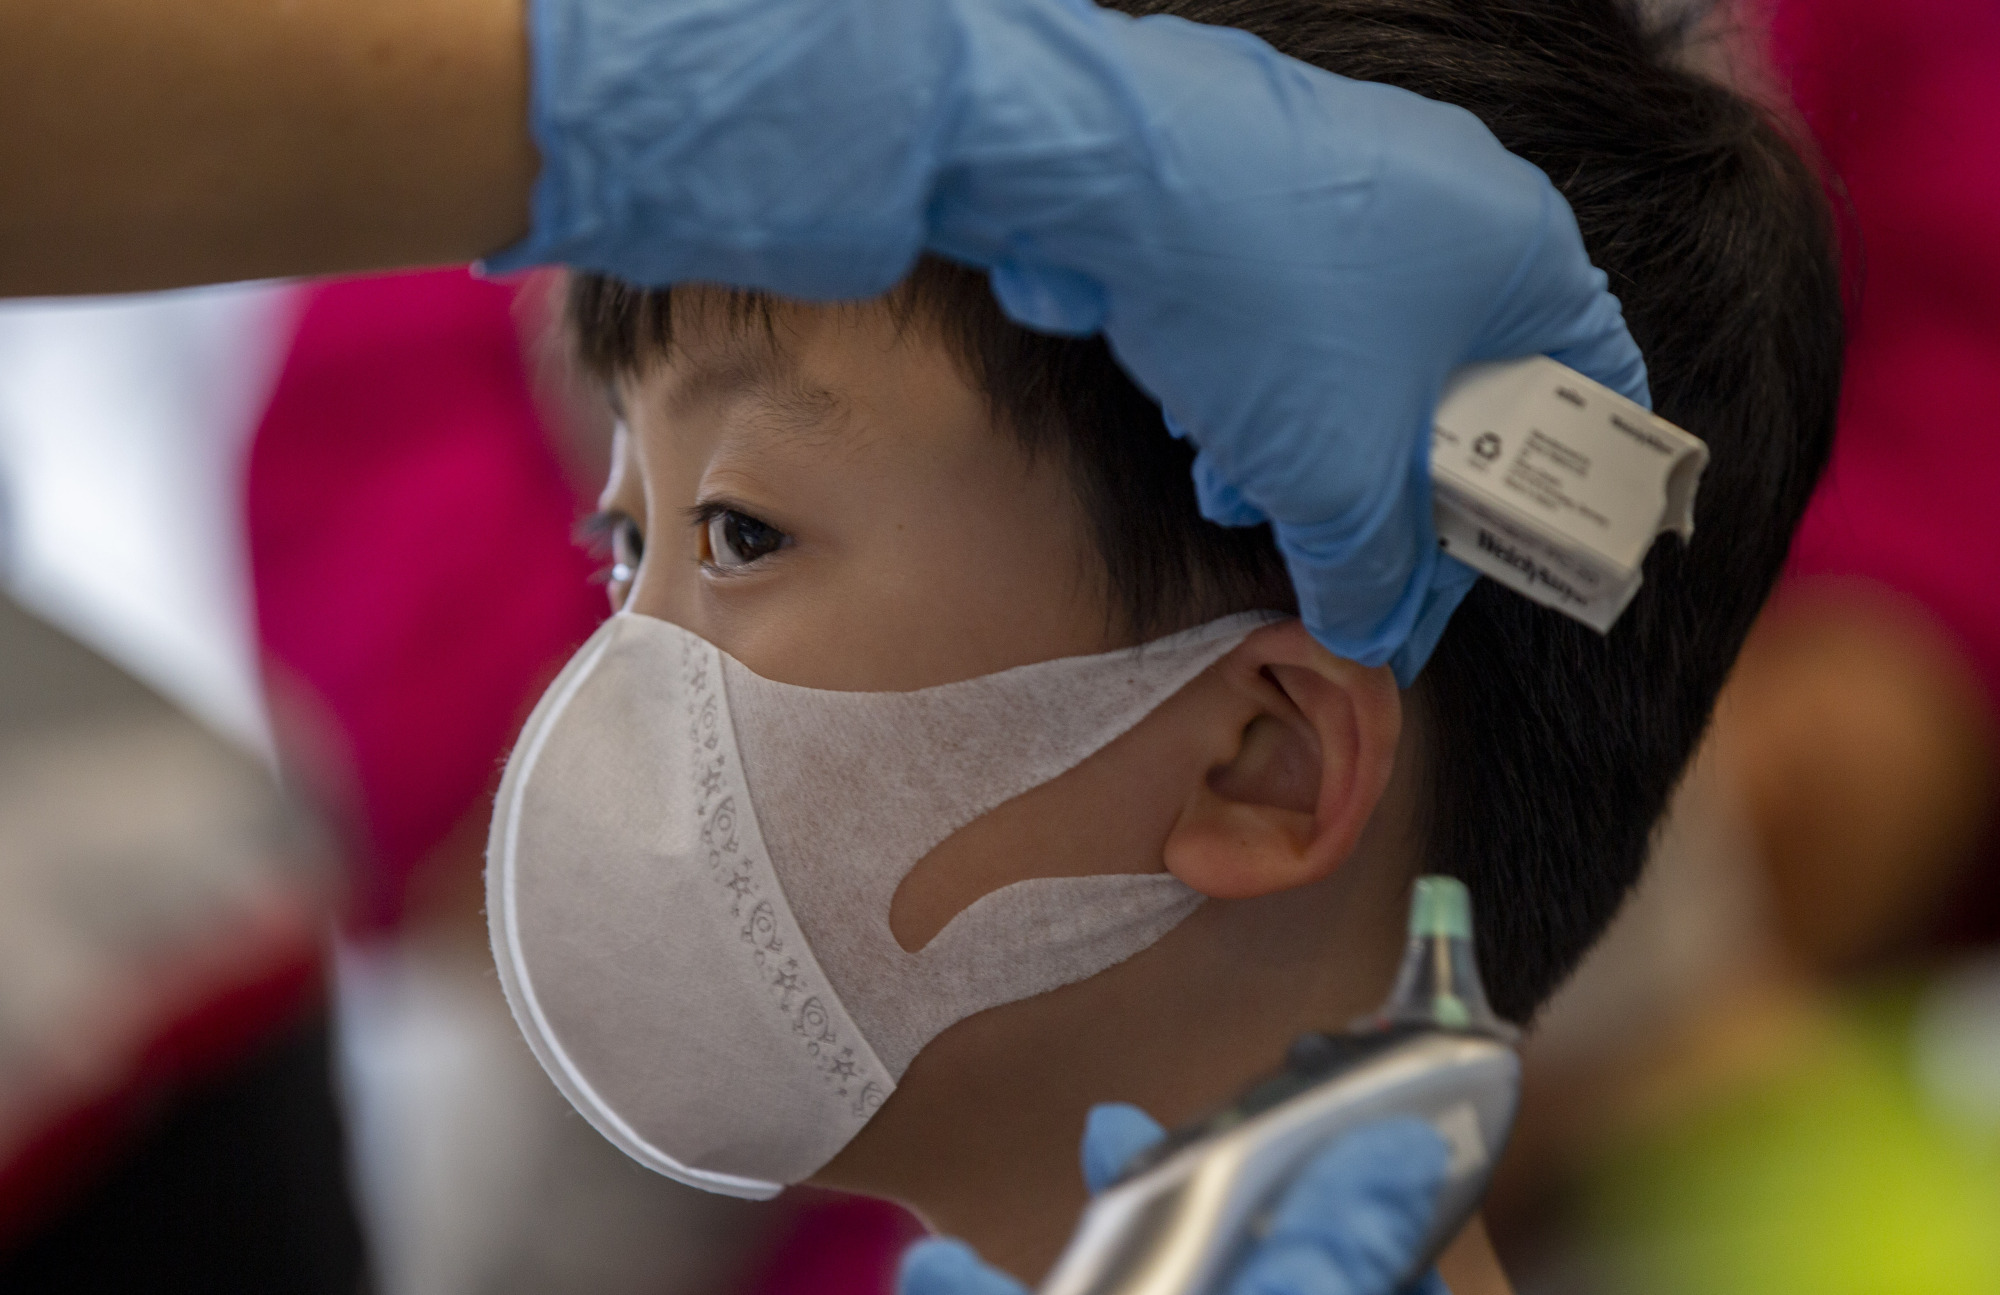 A health worker checks the temperature of tourist from Wuhan, China, as he waits for a charter flight back to the Chinese city at the Suvarnabhumi Airport in Bangkok on Friday.   AP